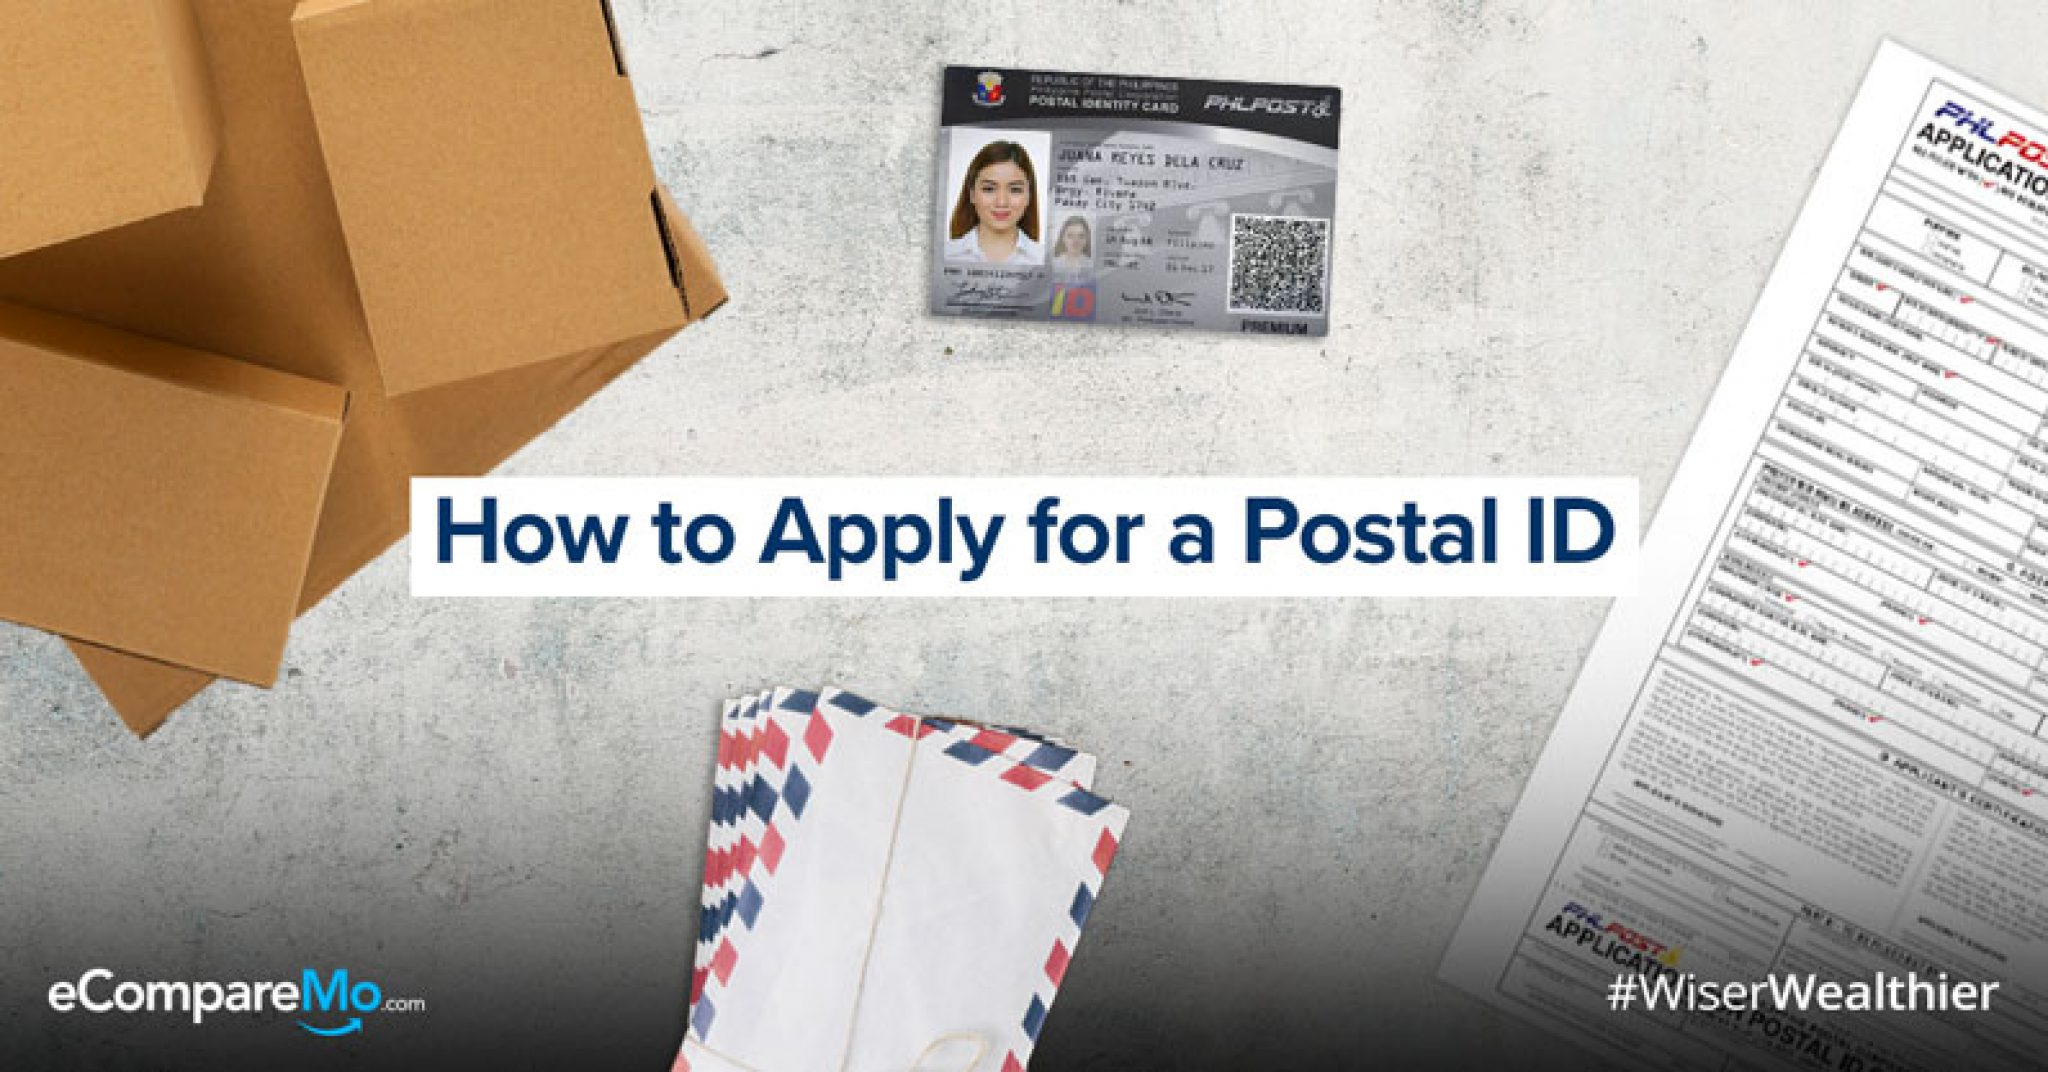 How to Apply for a Postal ID